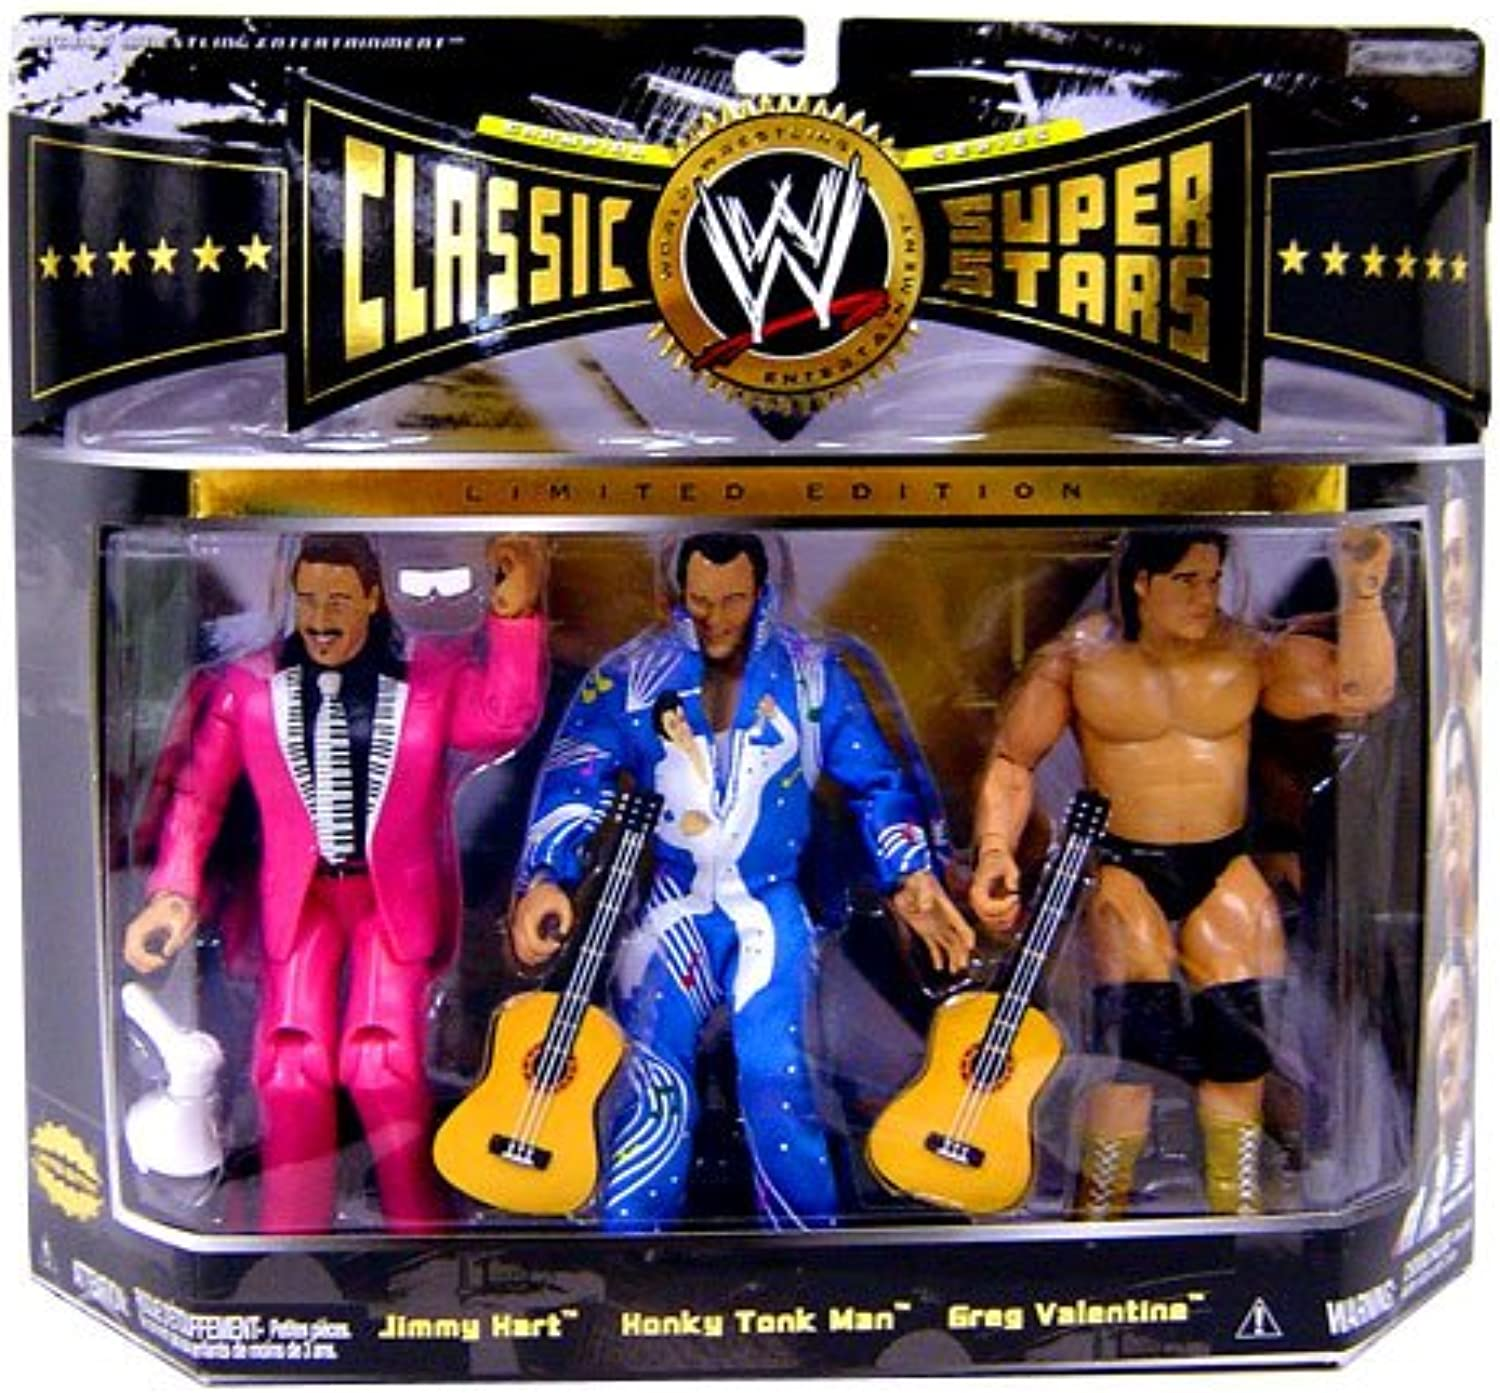 WWE Wrestling Classic Superstars Limited Edition Champion Series 3-Pack Rythm and bluees Jimmy Hart, Honky Tonk Man and Greg Valentine